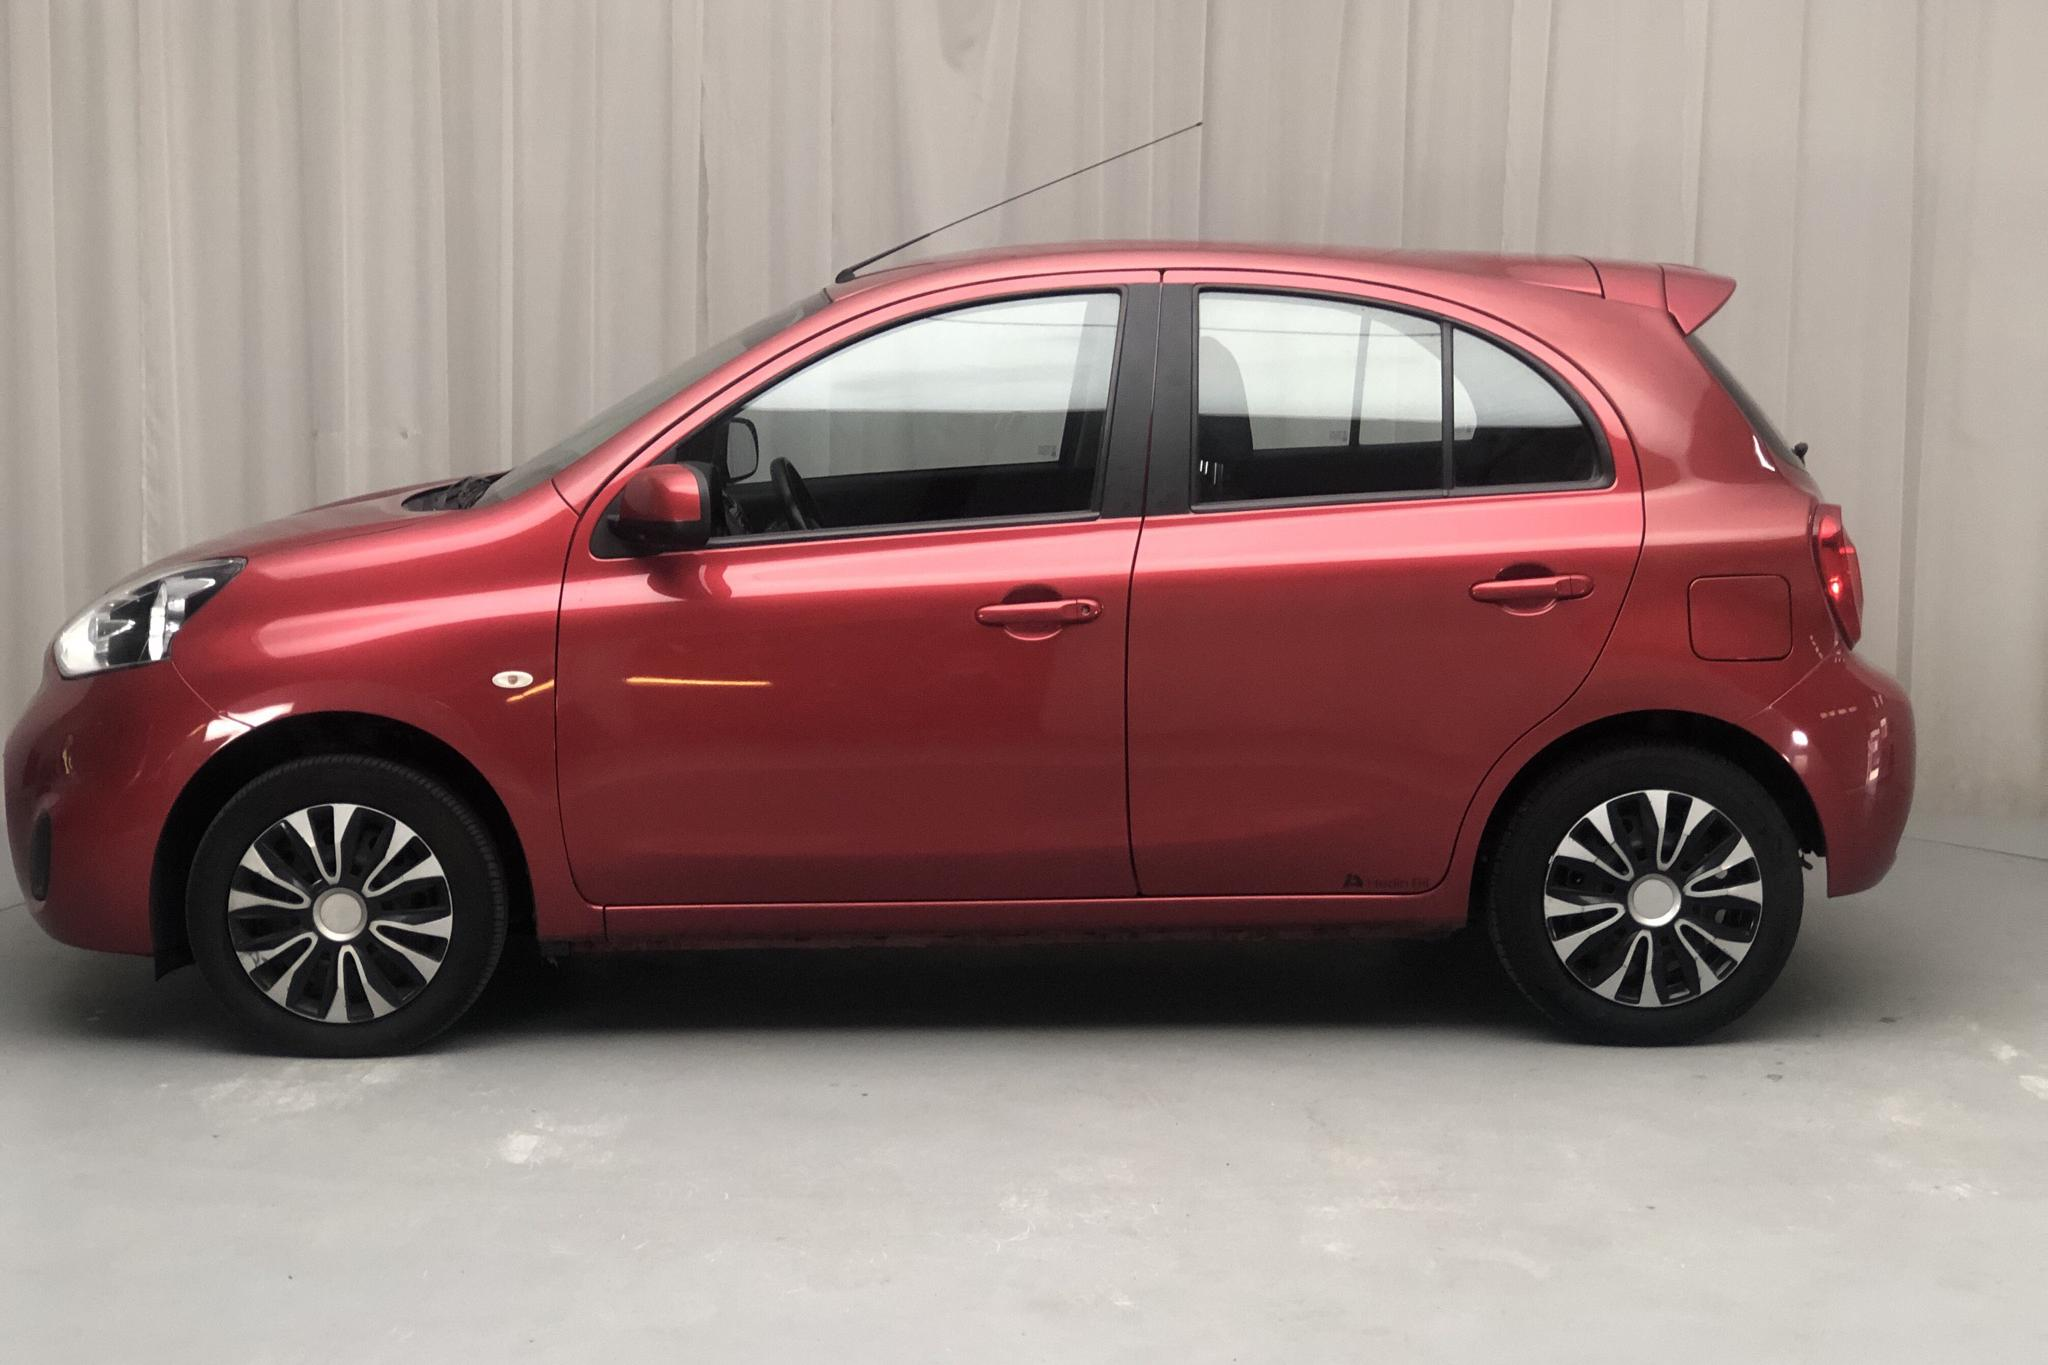 Nissan Micra 1.2 5dr (80hk) - 122 370 km - Automatic - red - 2016